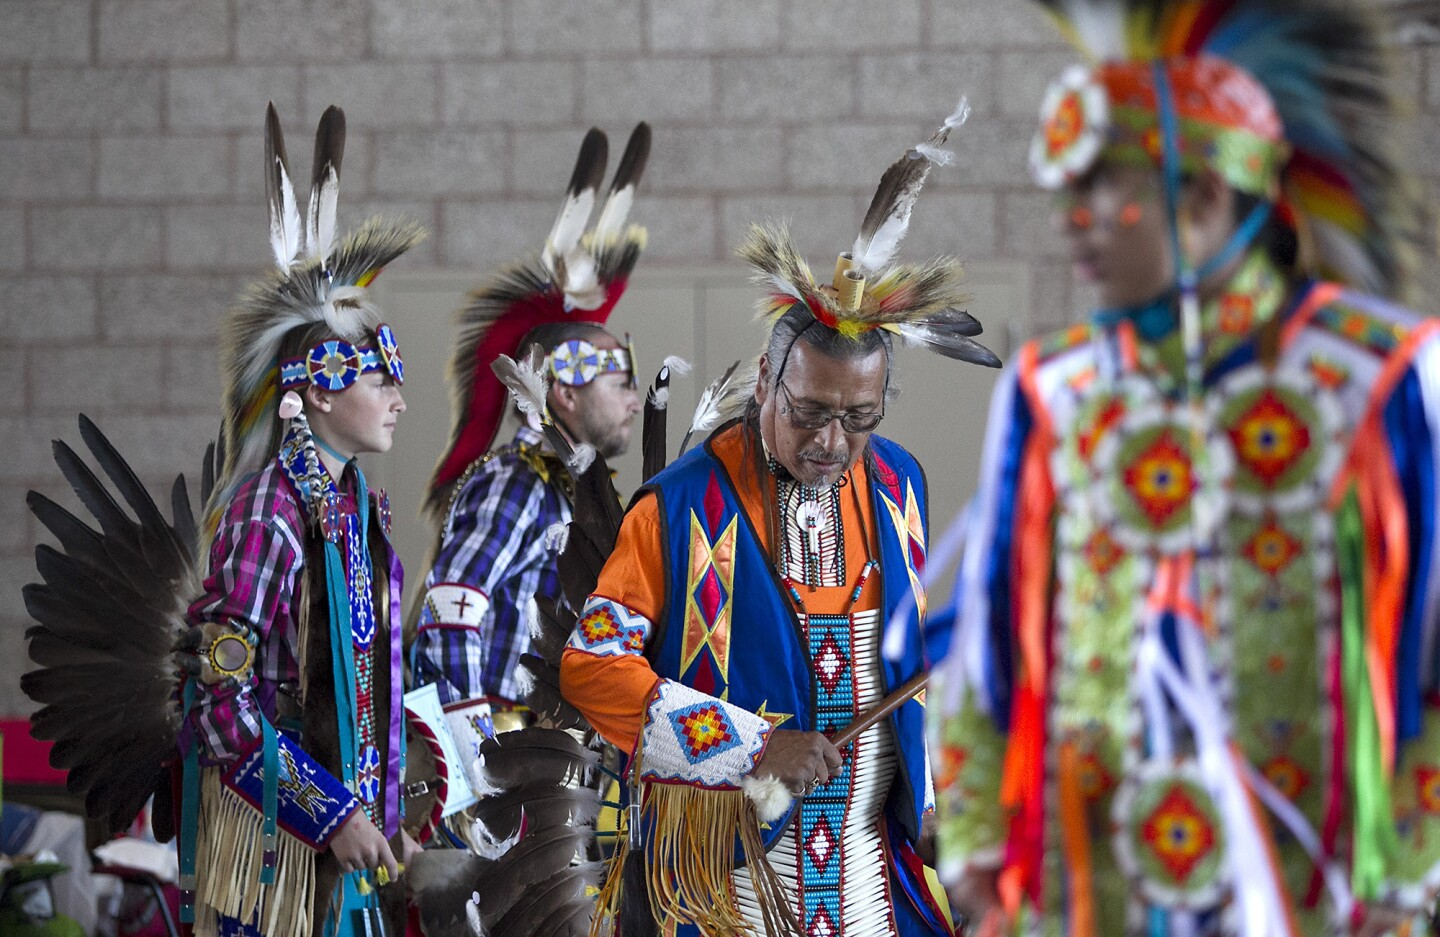 49th Annual Pow-Wow Brings Color and Tradition to OC